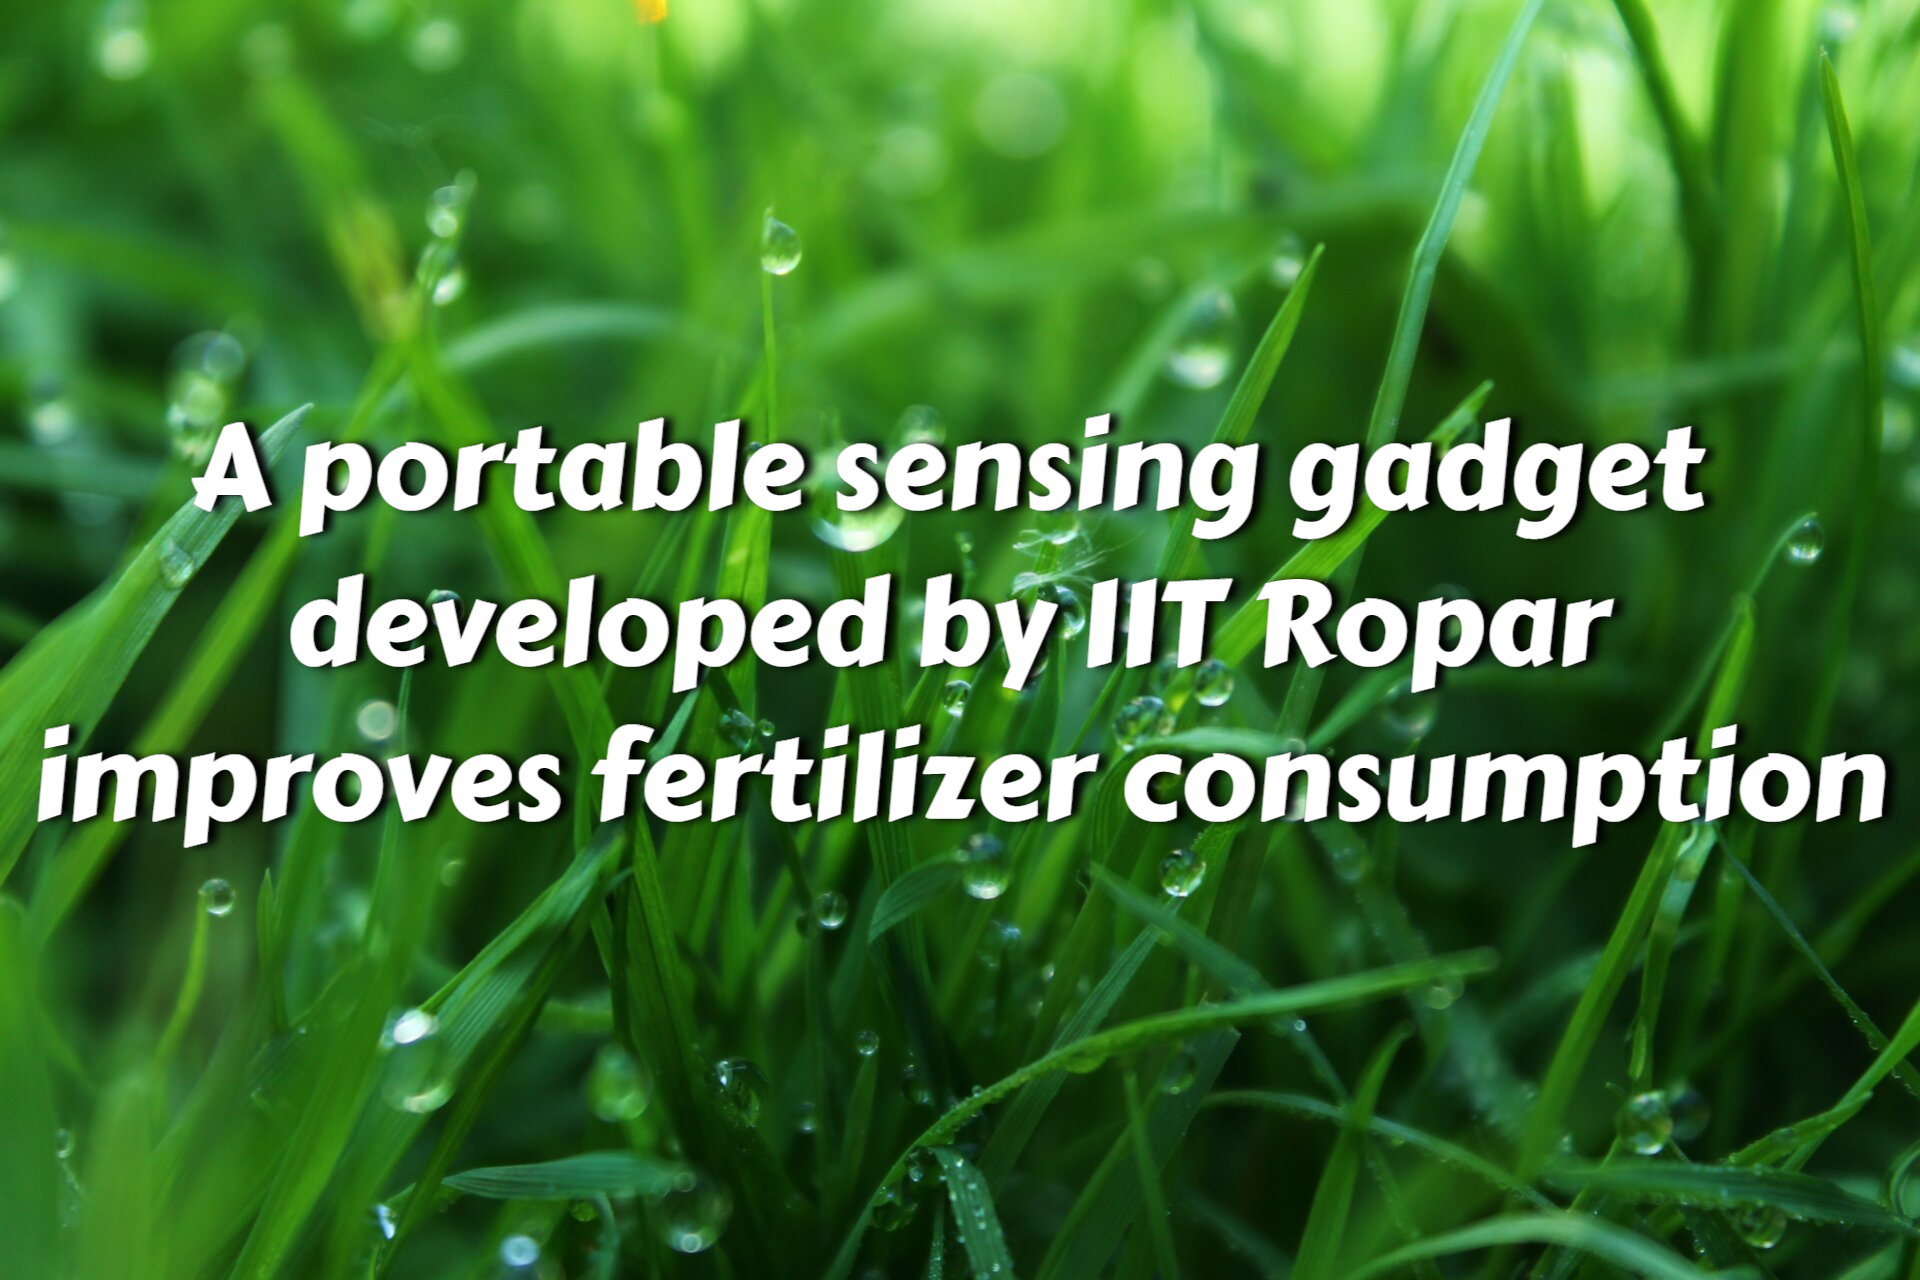 IIT Ropar comes up with a device that optimizes fertilizer use by a portable sensing device